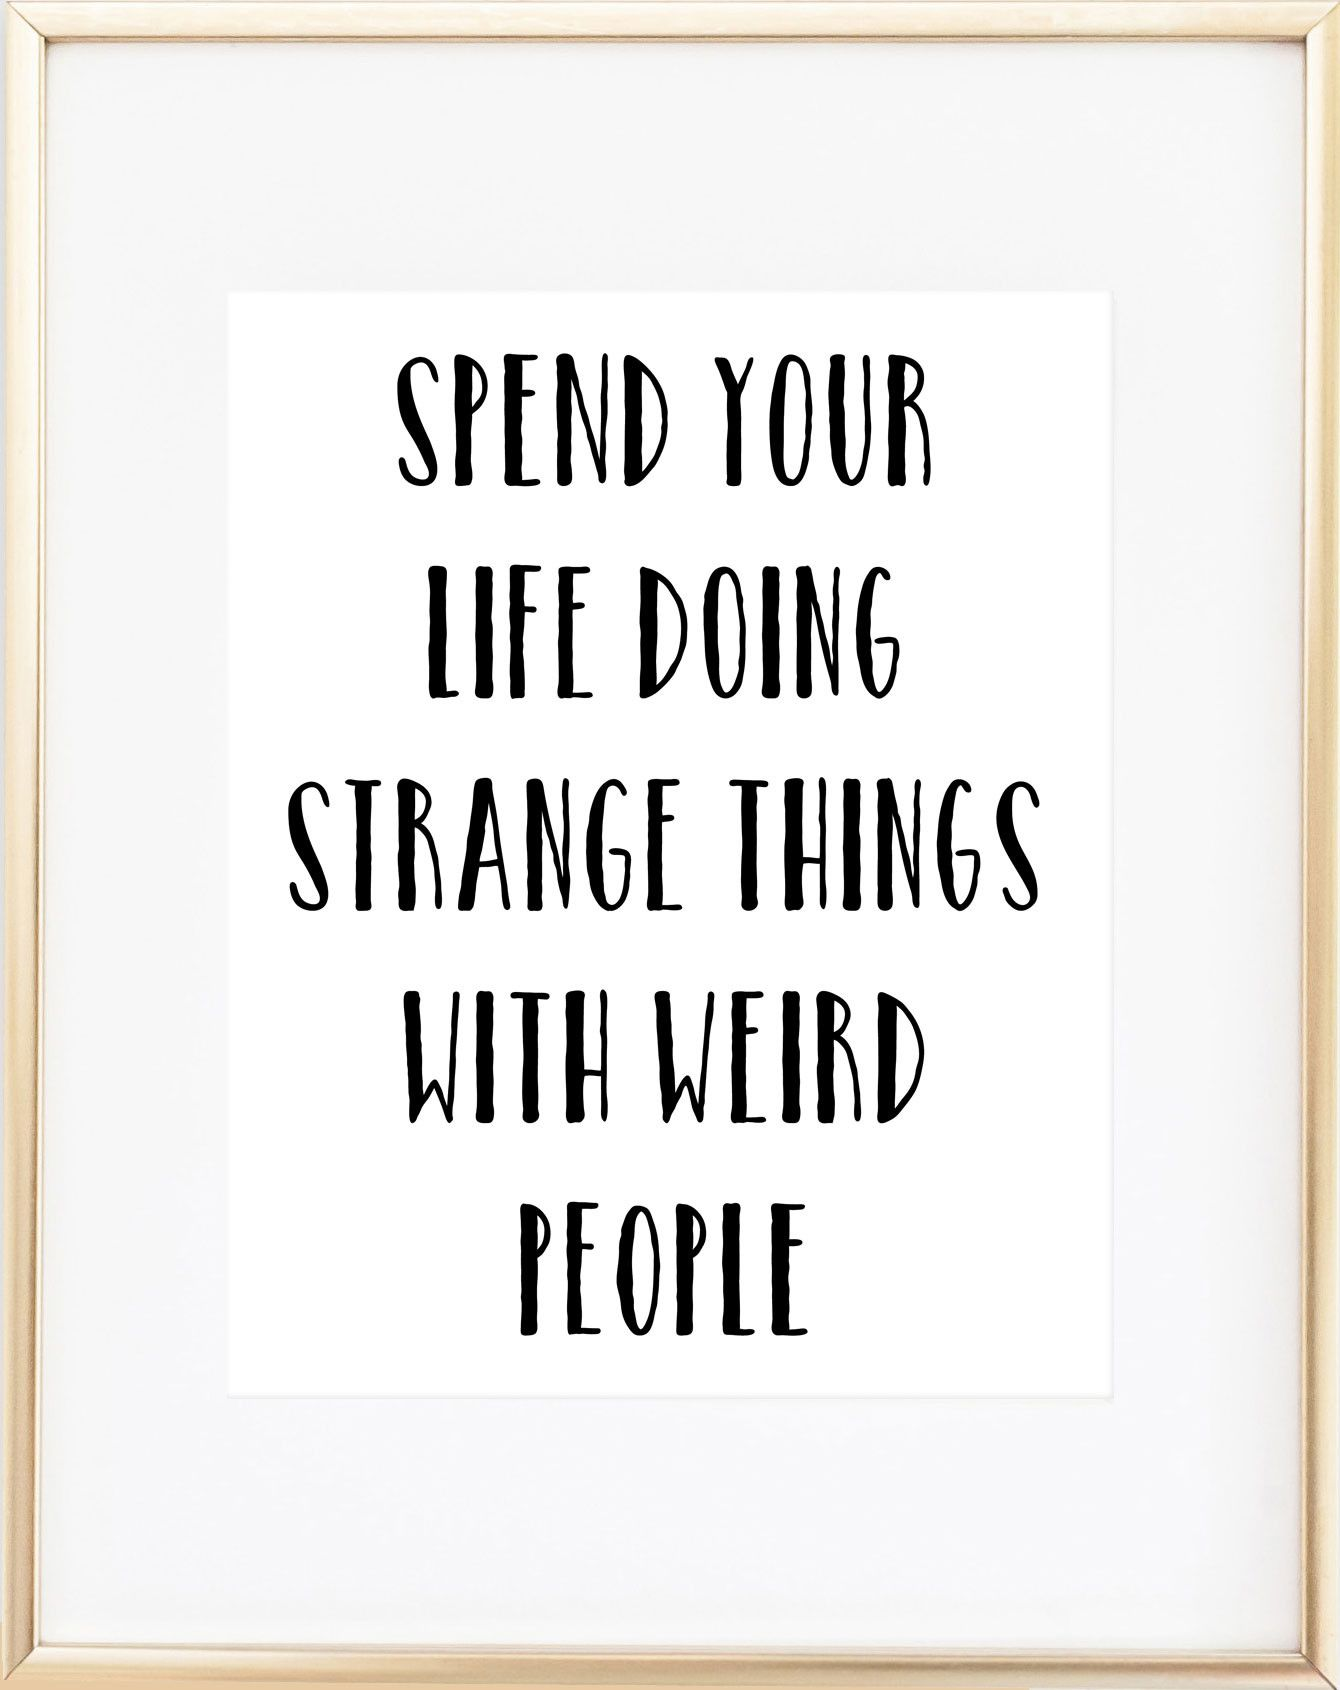 Quotes About Me Impressive Spend Your Life Doing Strange Things With Weird People Print